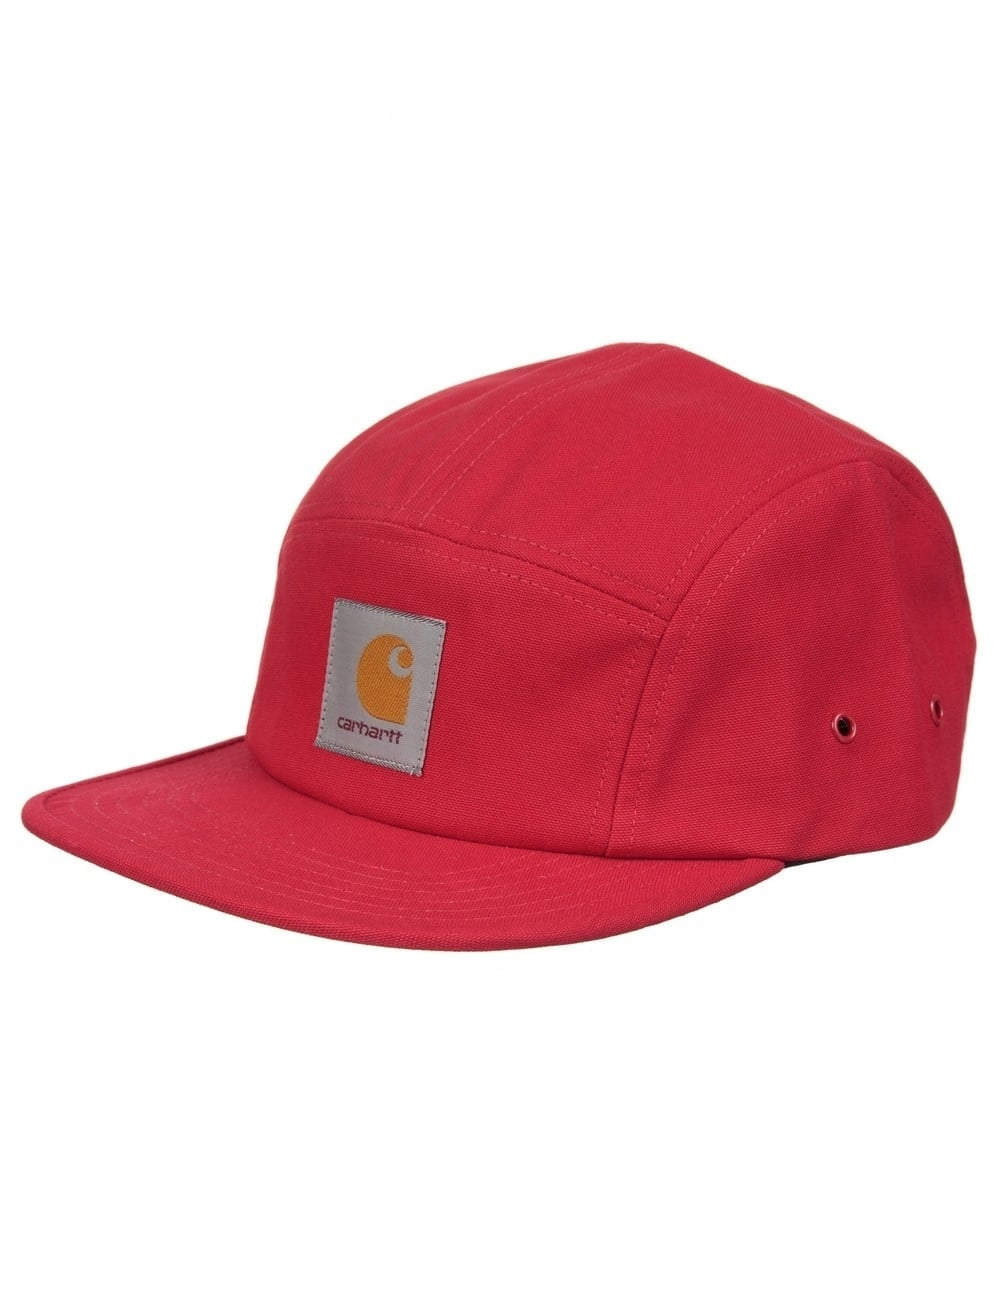 49fade815ba italy backley 5 panel hat fire red 798e2 94b95